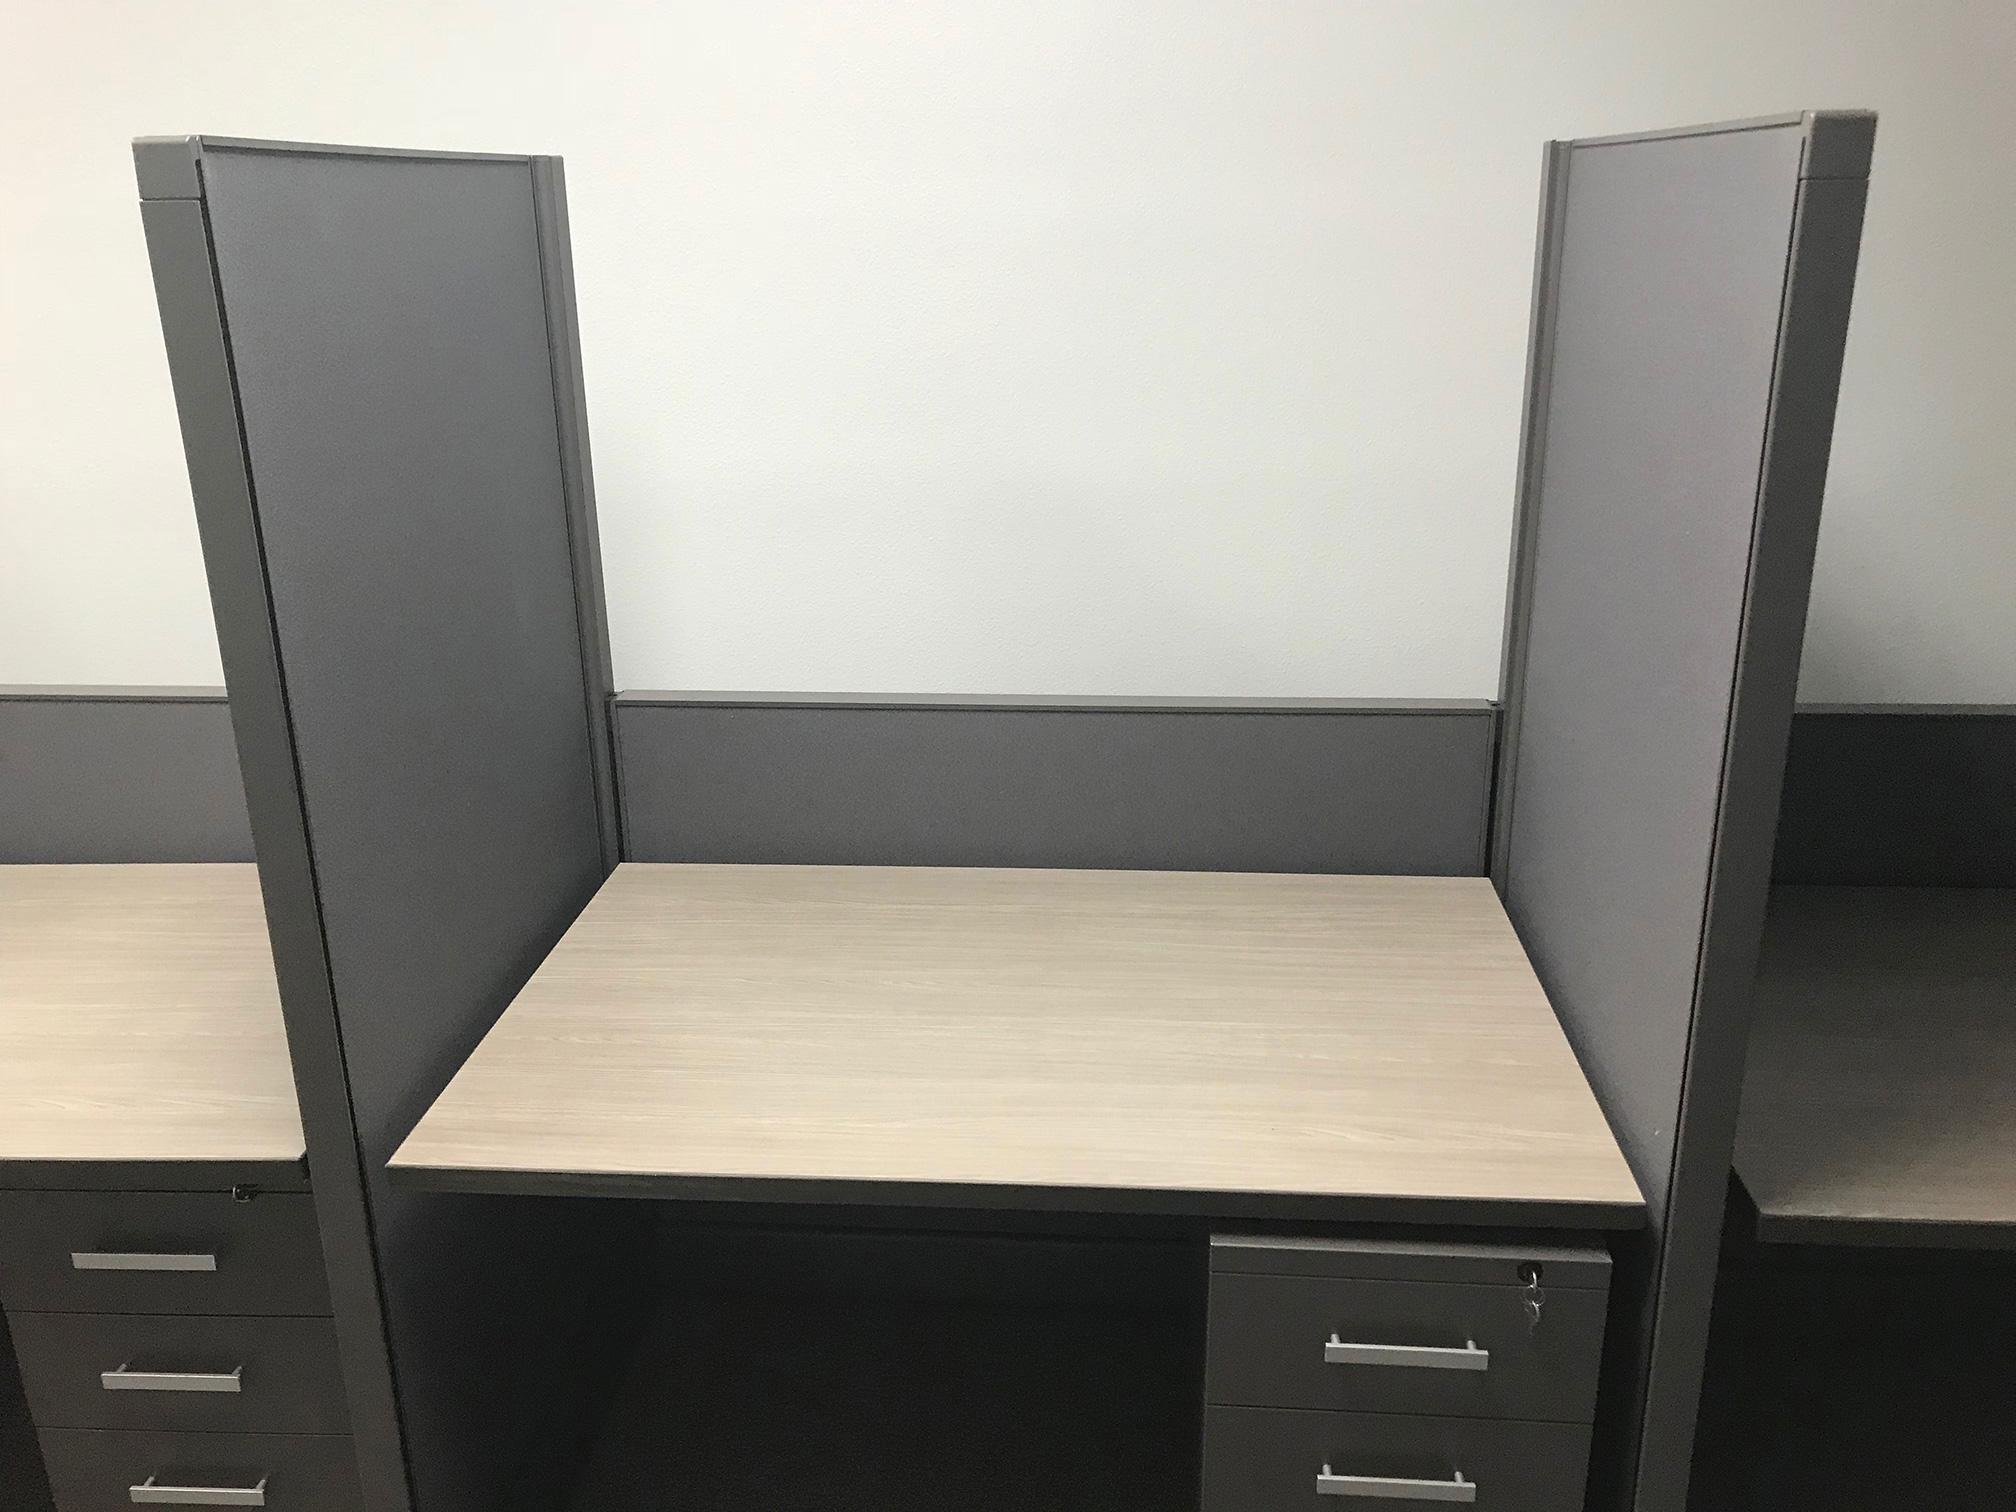 office-cubicles-for-sale-in-winter-haven-florida-3.jpg